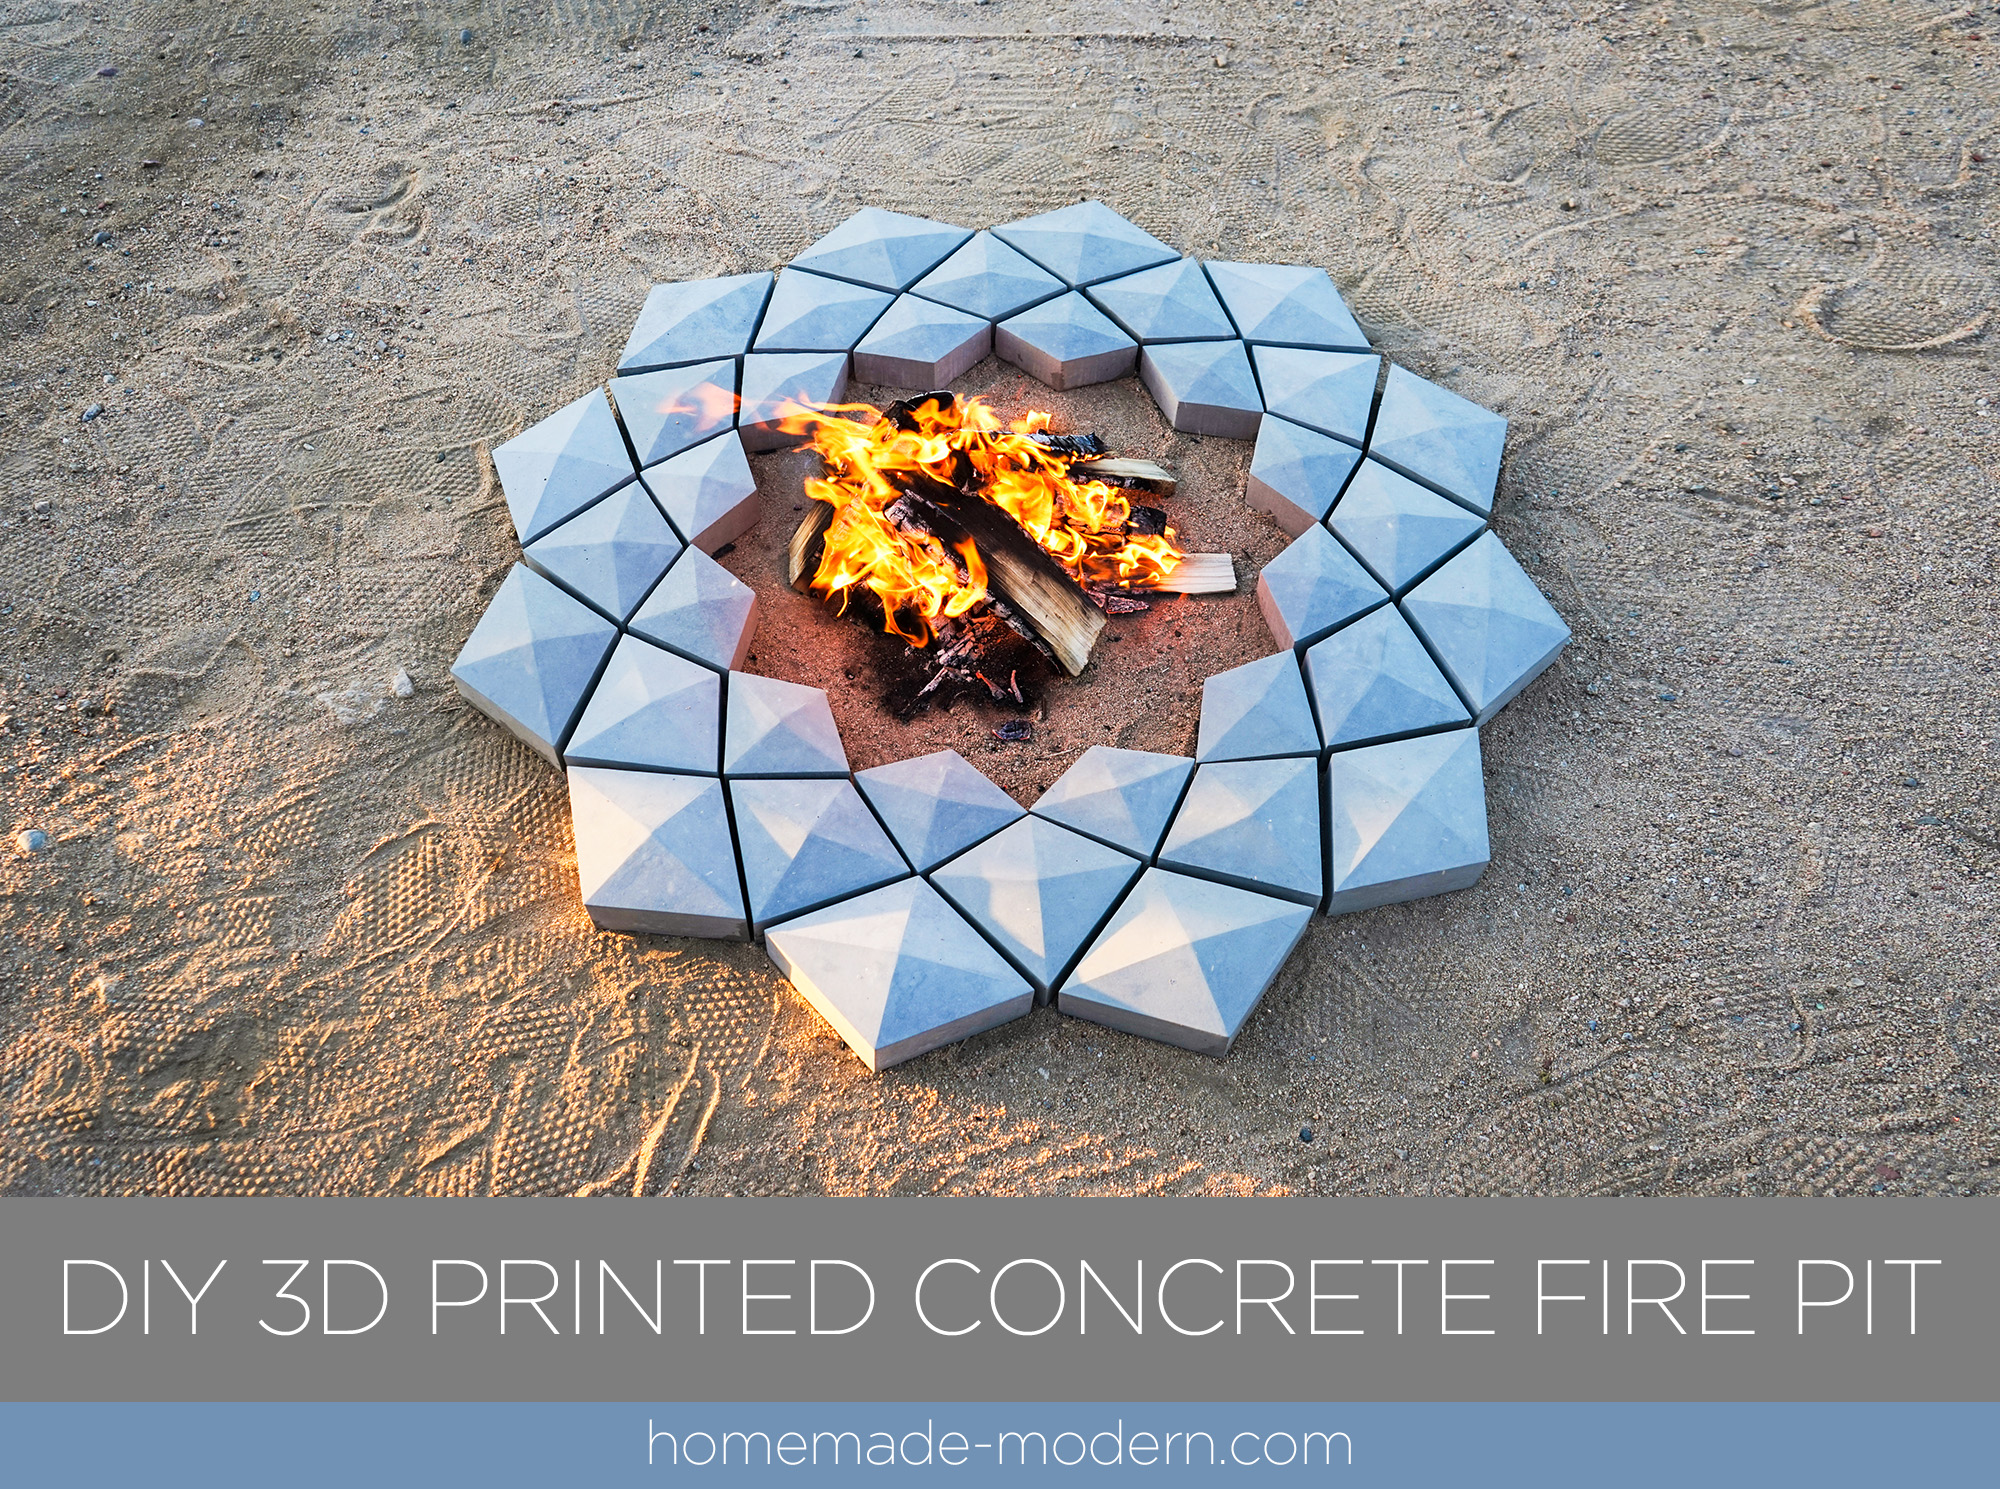 This 3D printed concrete fire pit was designed by Ben Uyeda of HomeMade-Modern.com You can download the 3D files for free and see a video showing the entire fabrication process. For more information go to HomeMade-Modern.com